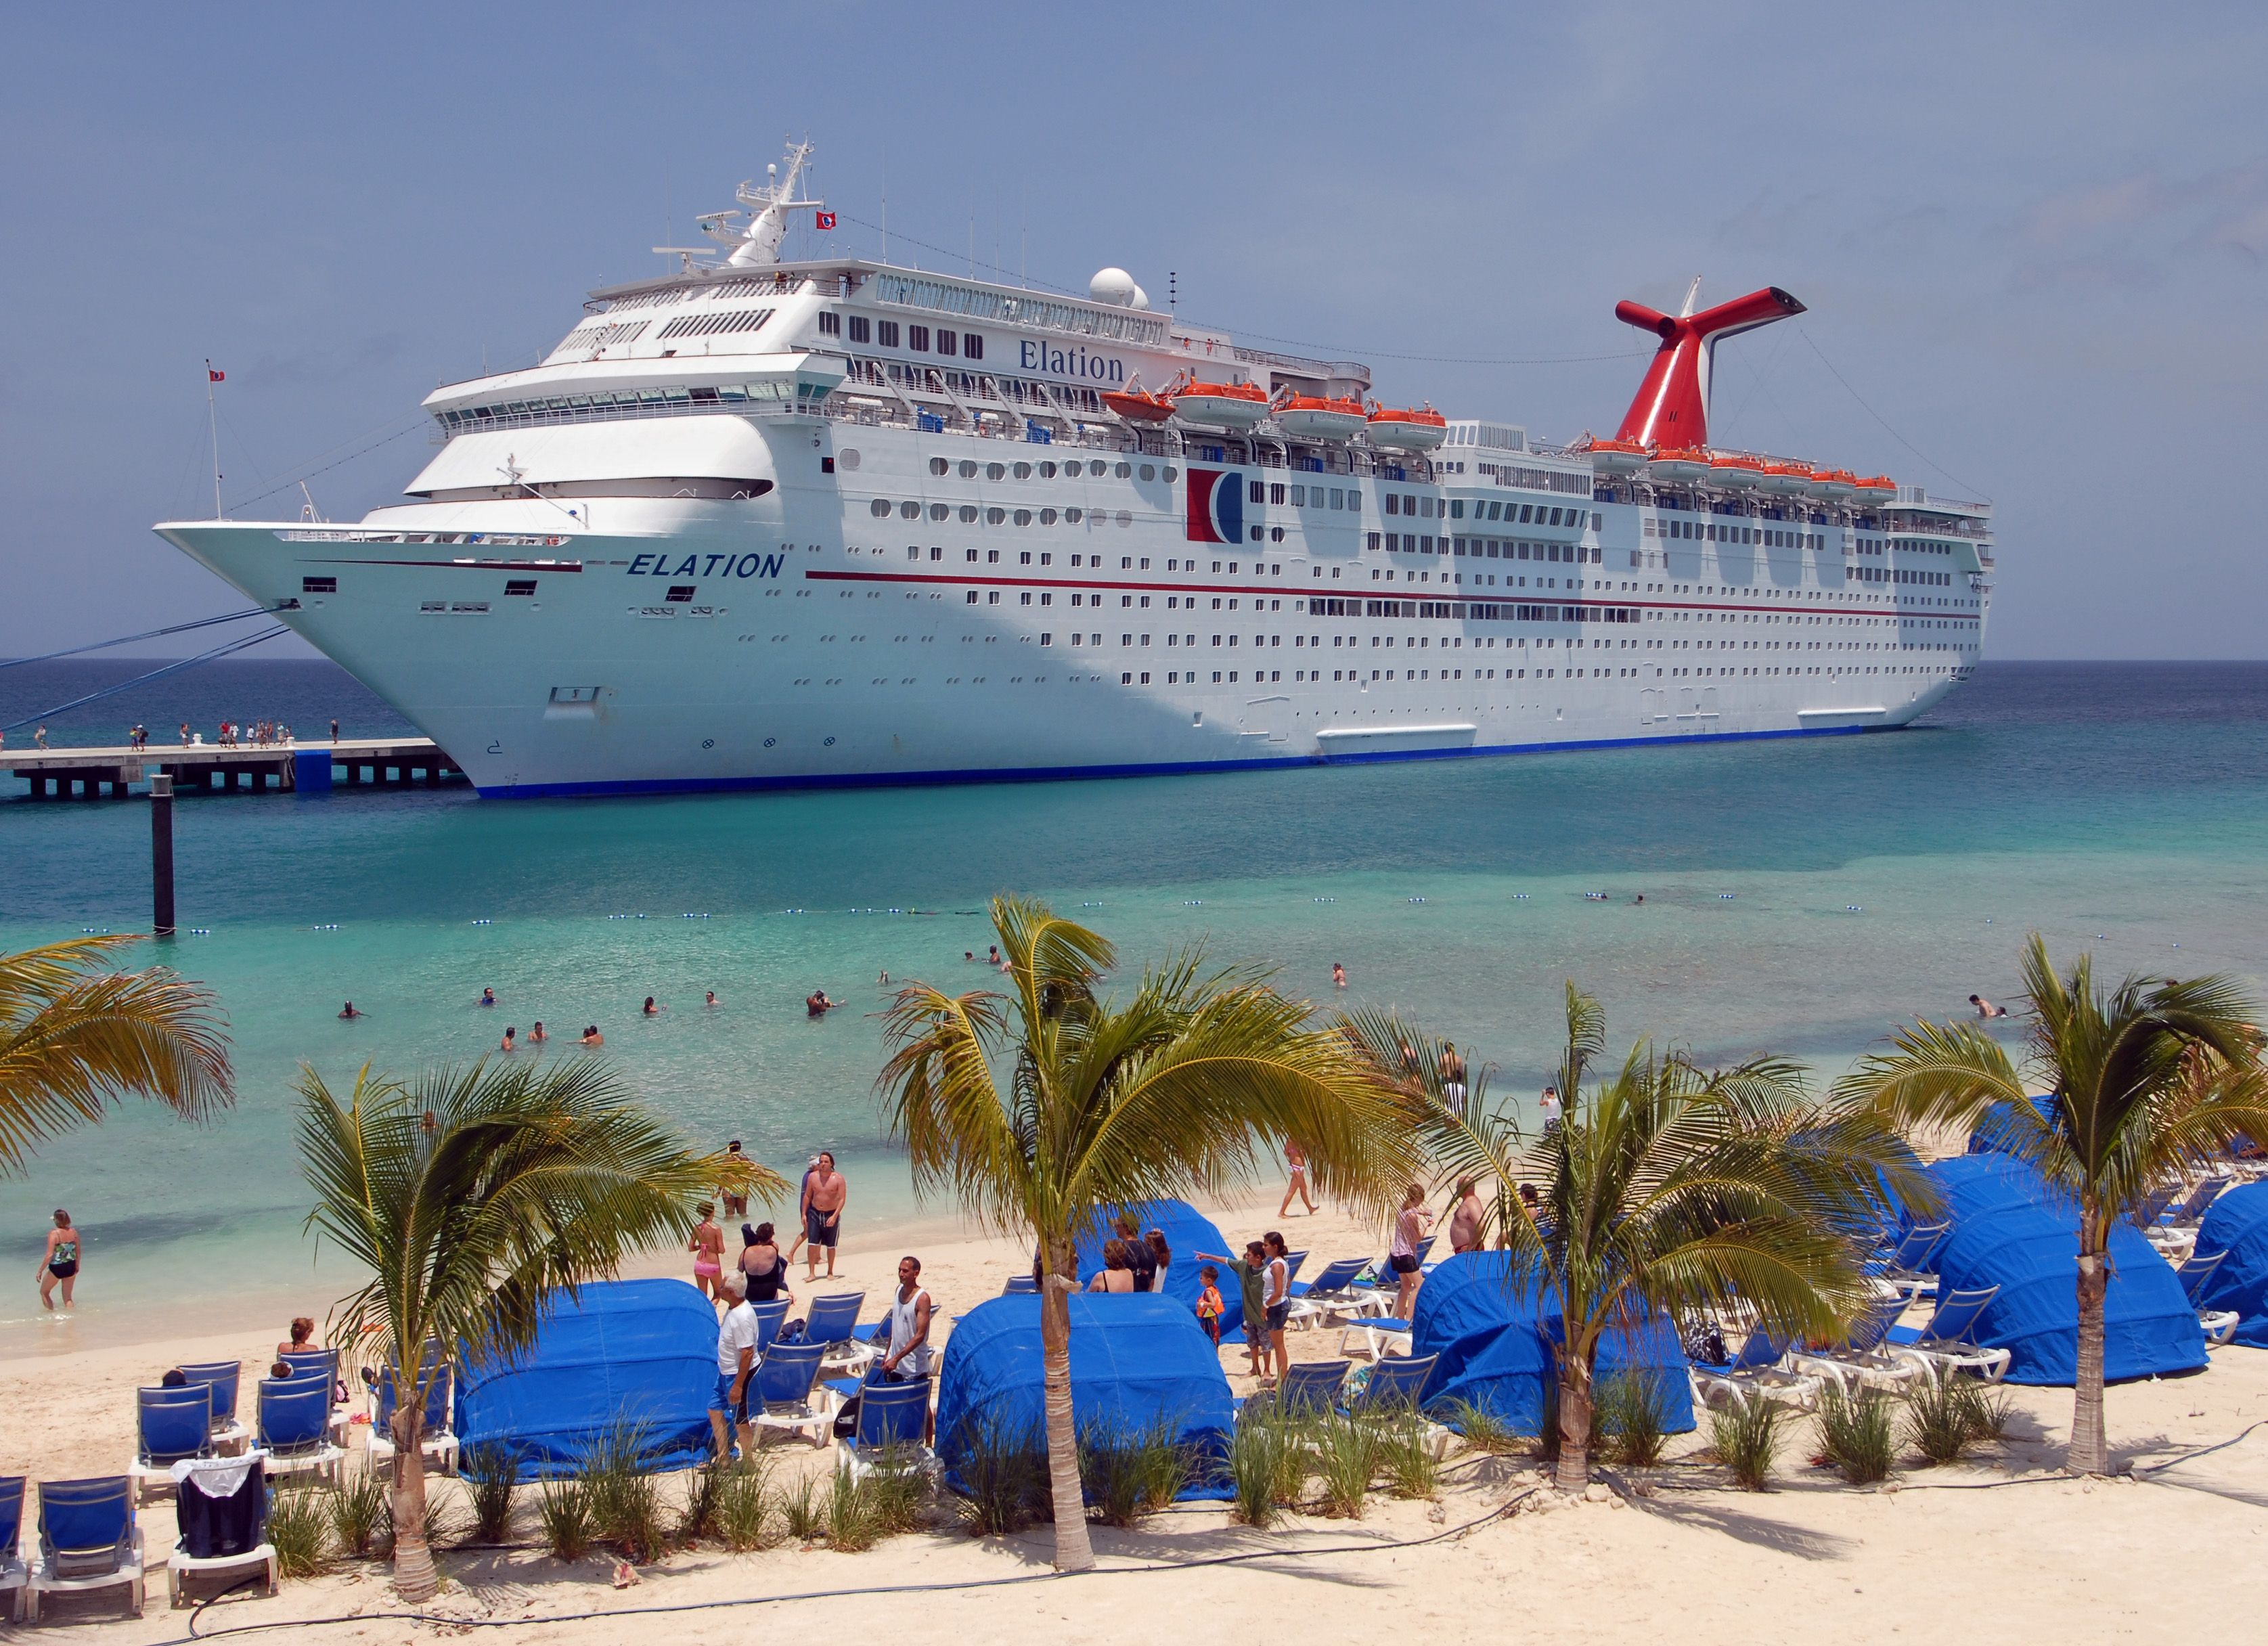 Best 25 carnival elation ideas on pinterest carnival cruise spring break on the carnival elation destination cozumel mexico baanklon Choice Image